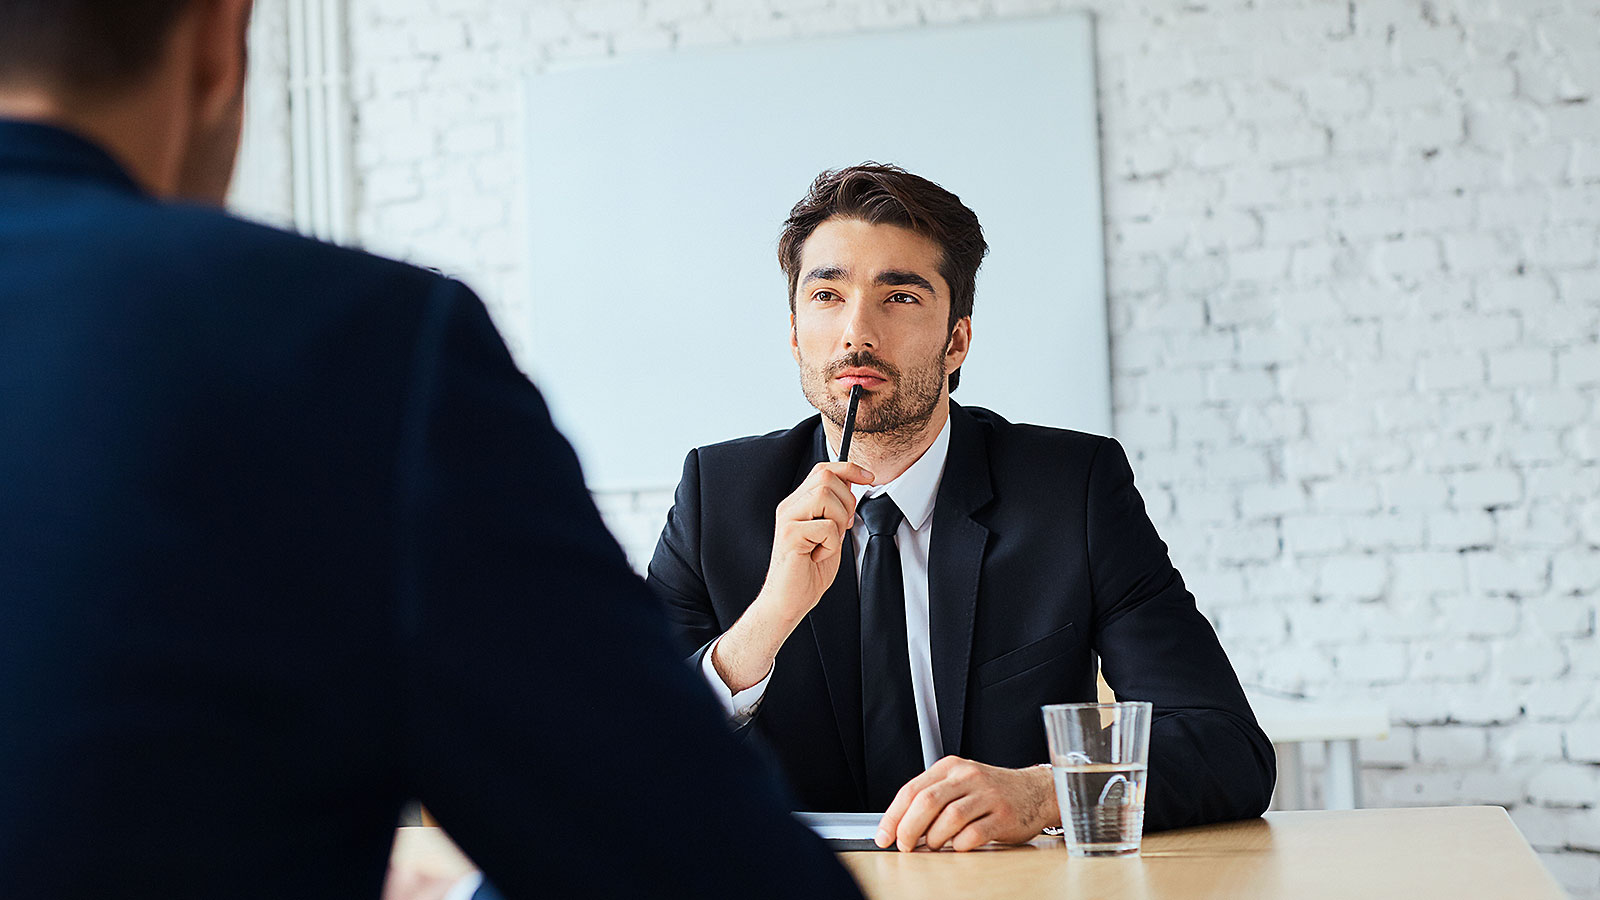 Awkward silences are the trick to getting more money in a salary negotiation. Here's how to use them without coming off as nervous or unprepared.